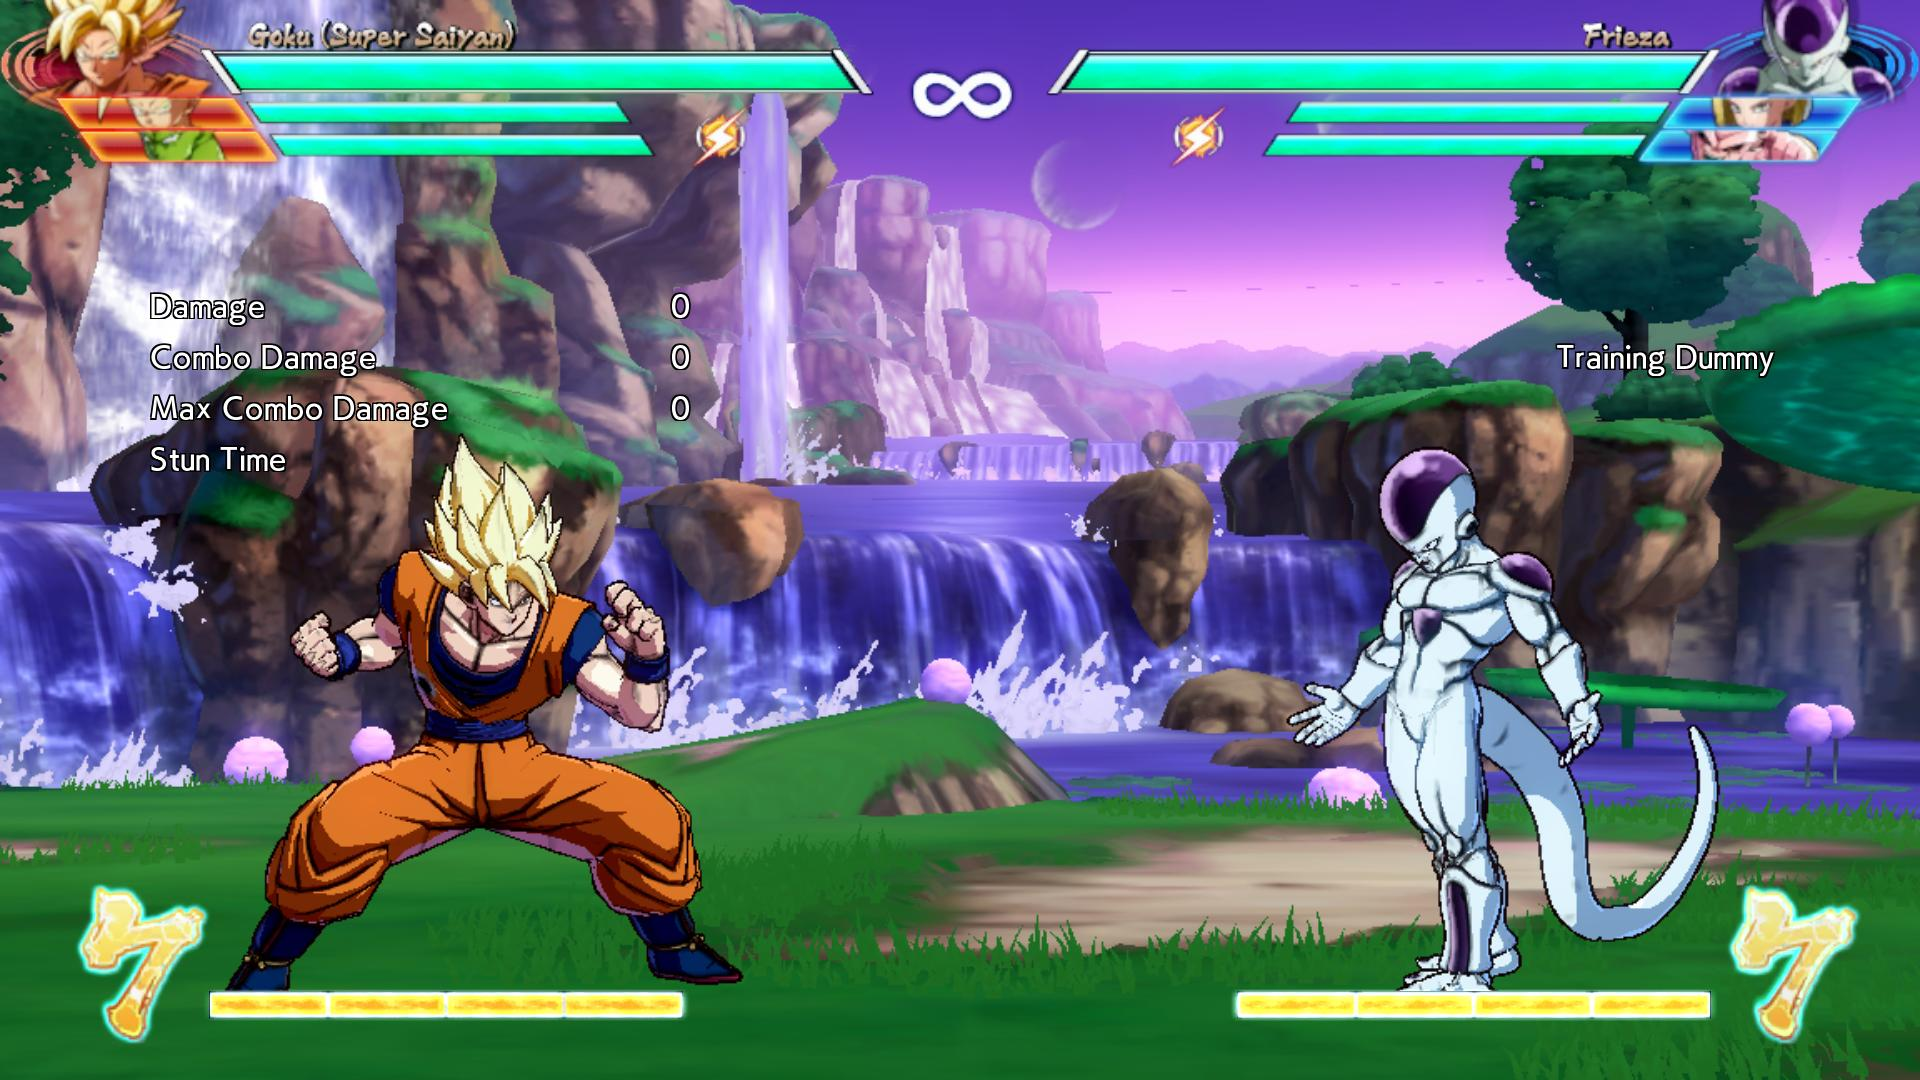 Dragon Ball FighterZ PC graphics settings, keybindings, and